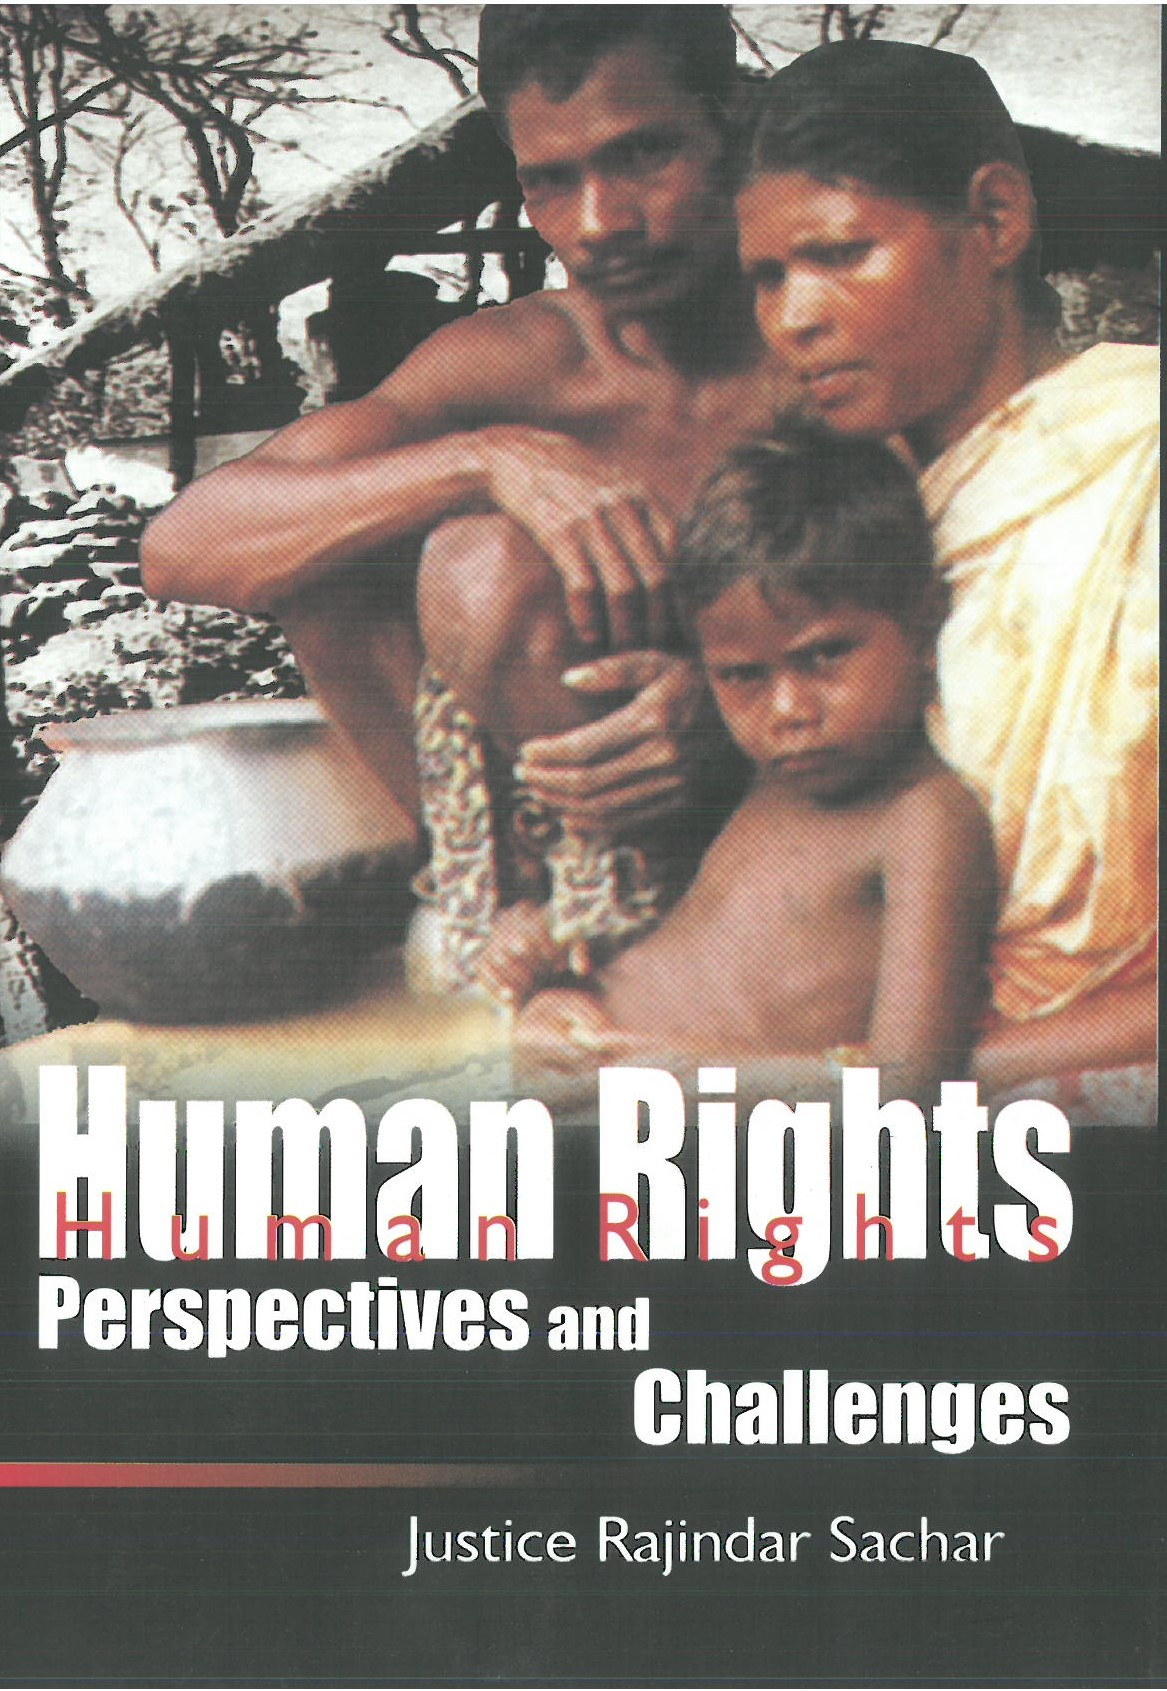 Human Rights Perspectives and Challenges